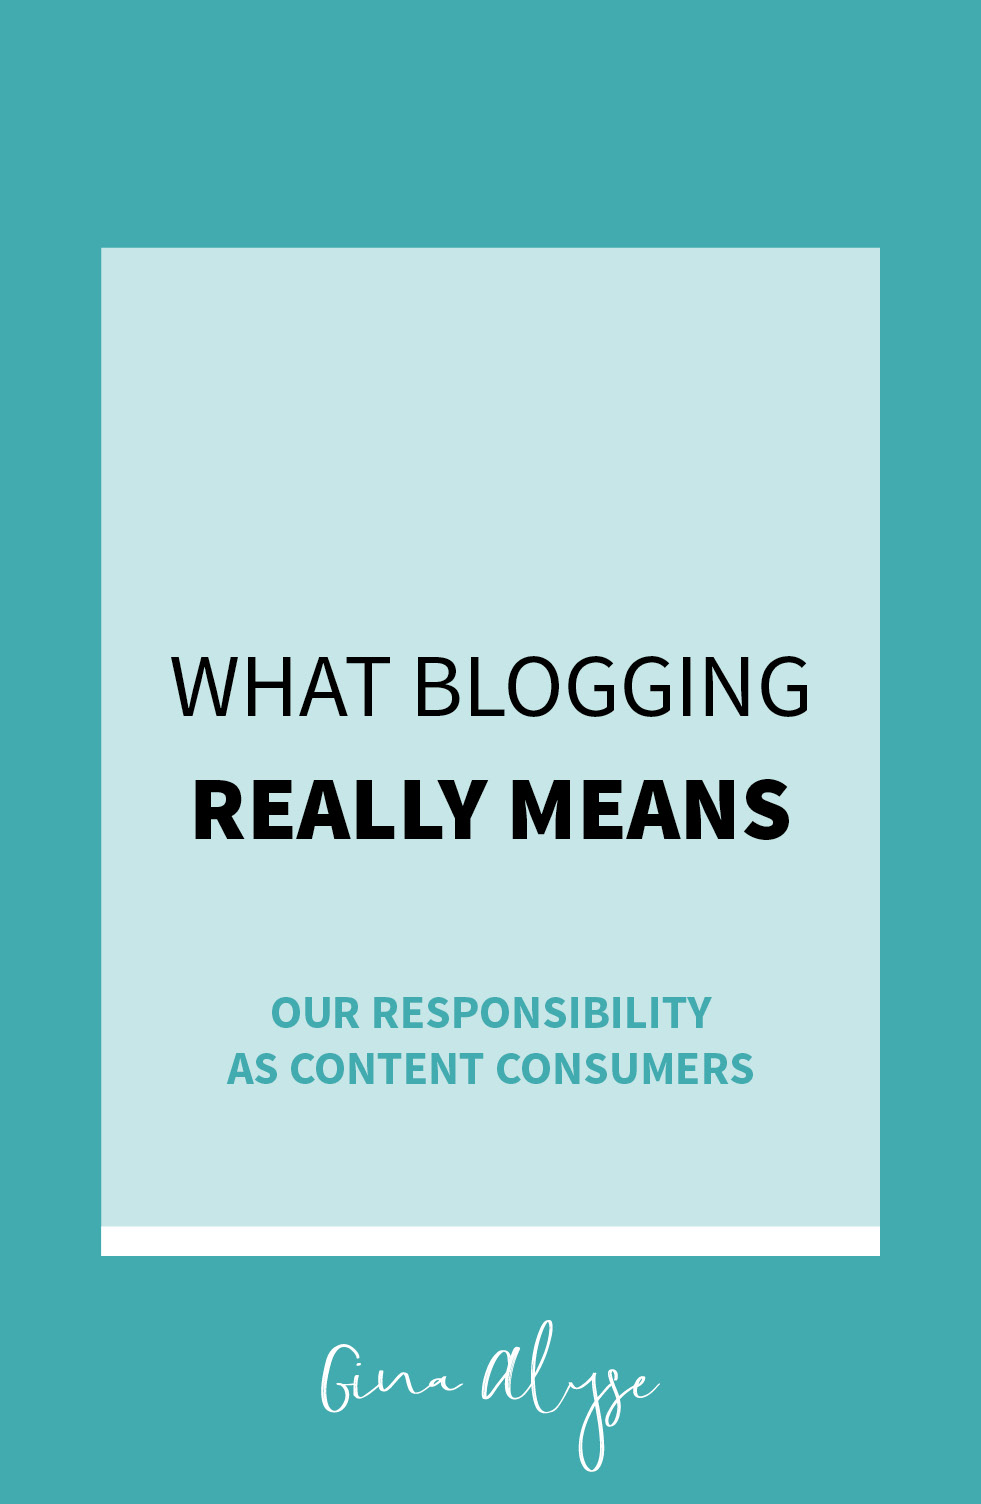 What Blogging Really Means – Our Responsibility as Content Consumers